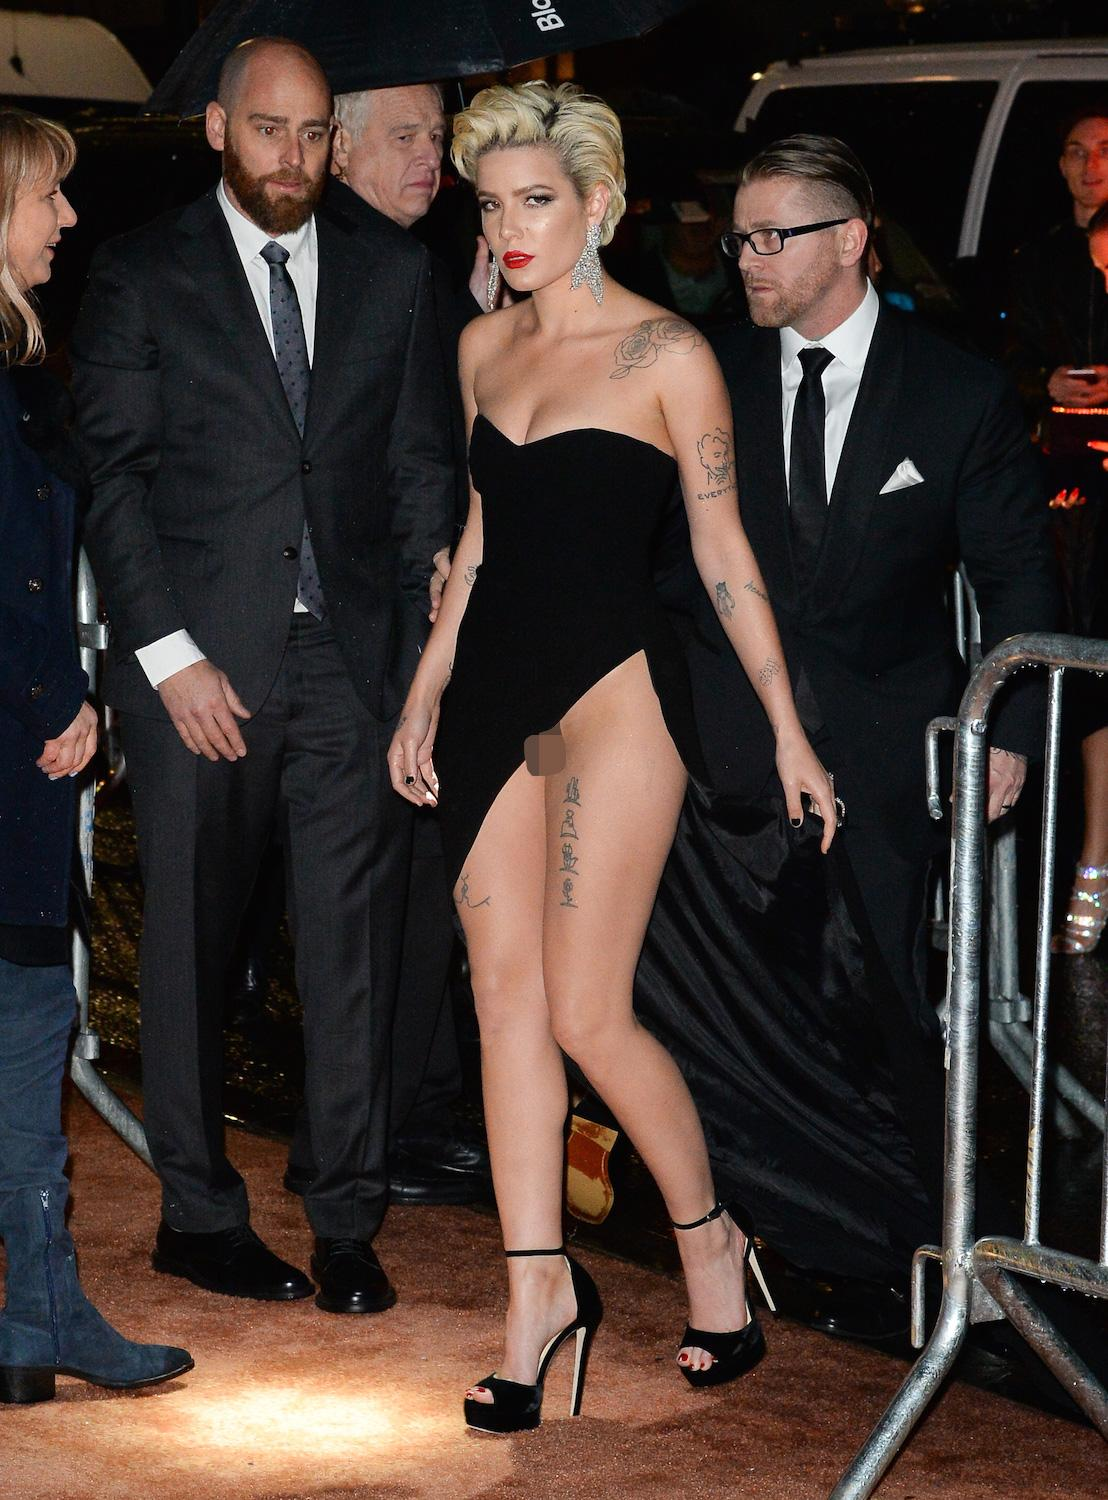 The star wore a revealing black strapless dress with thigh high split